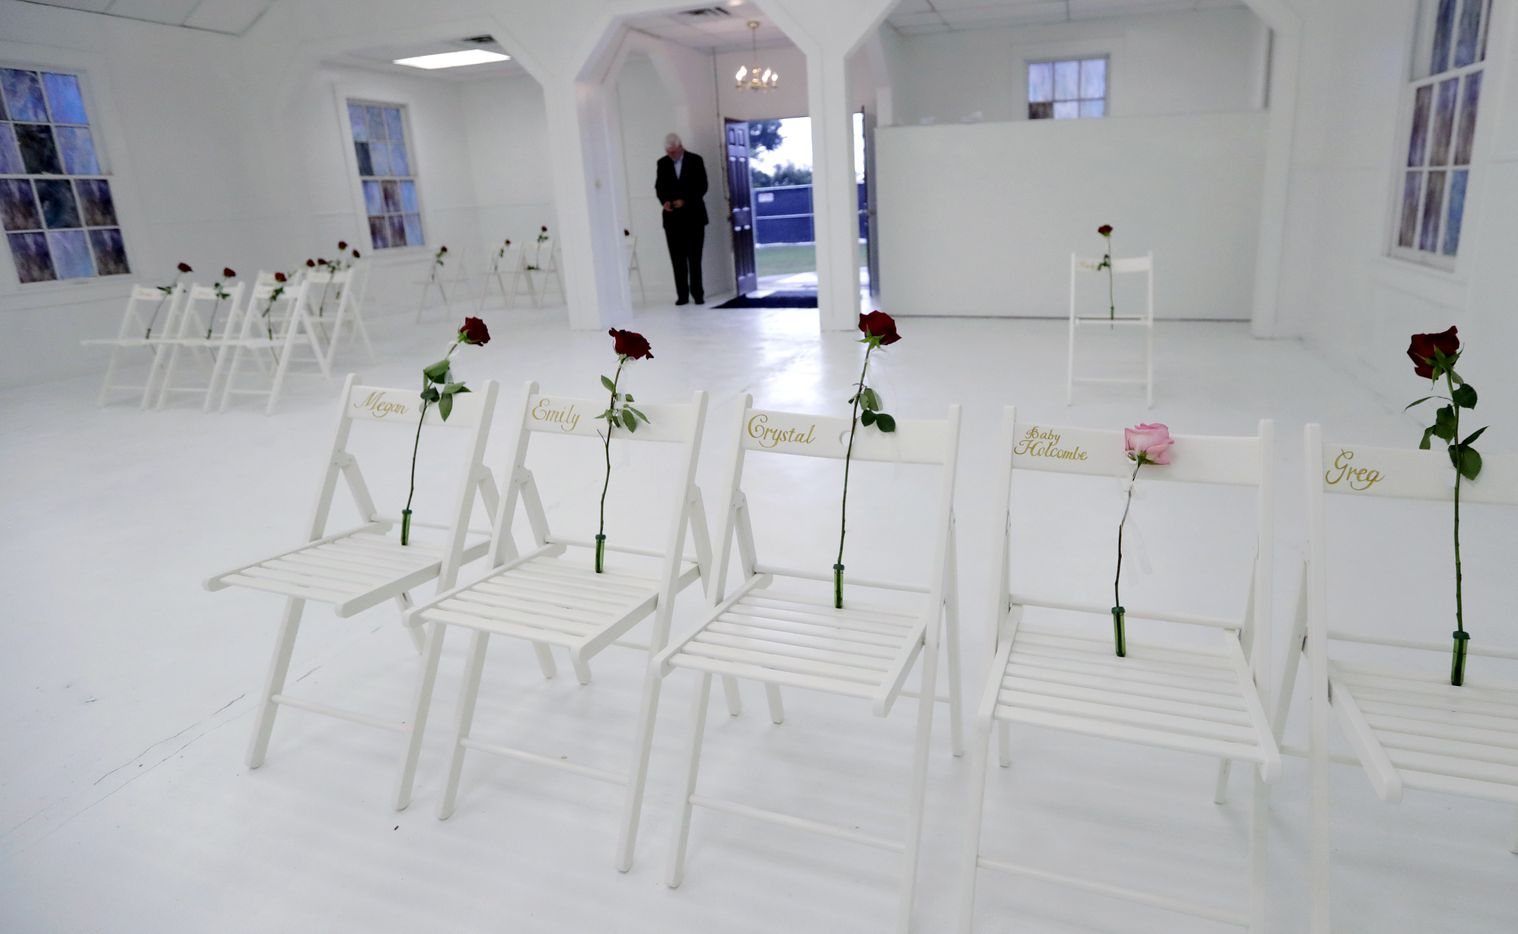 A memorial for the victims of the shooting at Sutherland Springs First Baptist Church, including 26 white chairs each painted with a cross and and rose, is displayed in the church Sunday, Nov. 12, 2017, in Sutherland Springs, Texas. A man opened fire inside the church in the small South Texas community last week, killing more than two dozen.